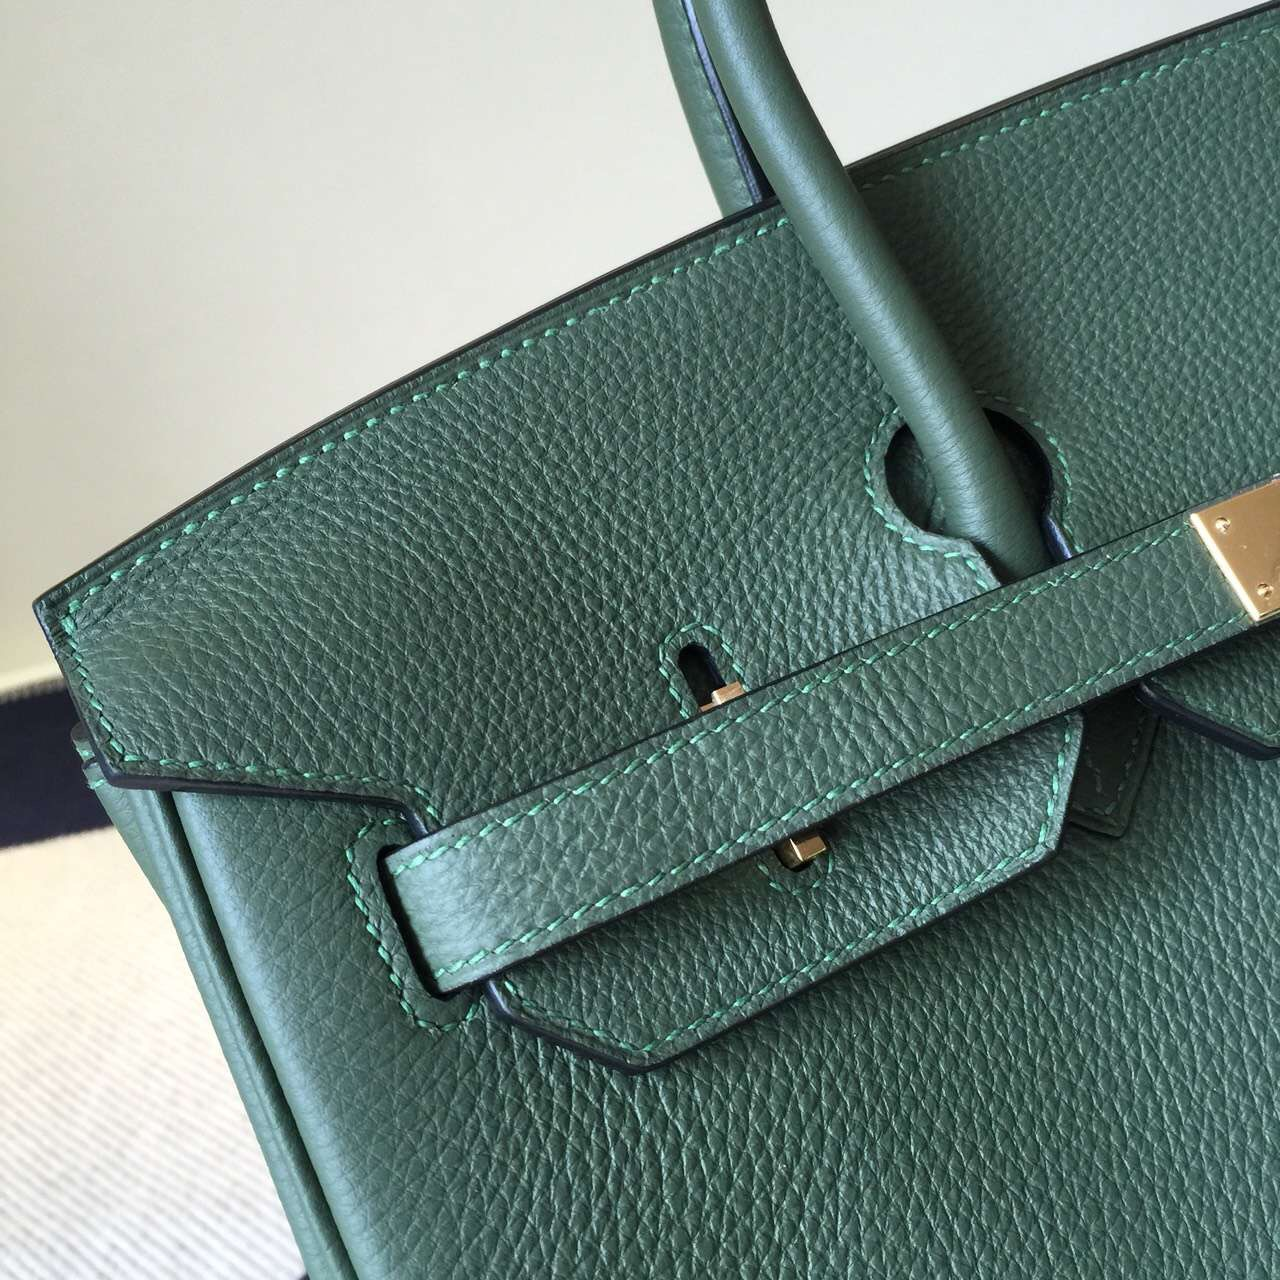 Wholesale Hermes Jungle Green Togo Leather Birkin35cm Tote Bag